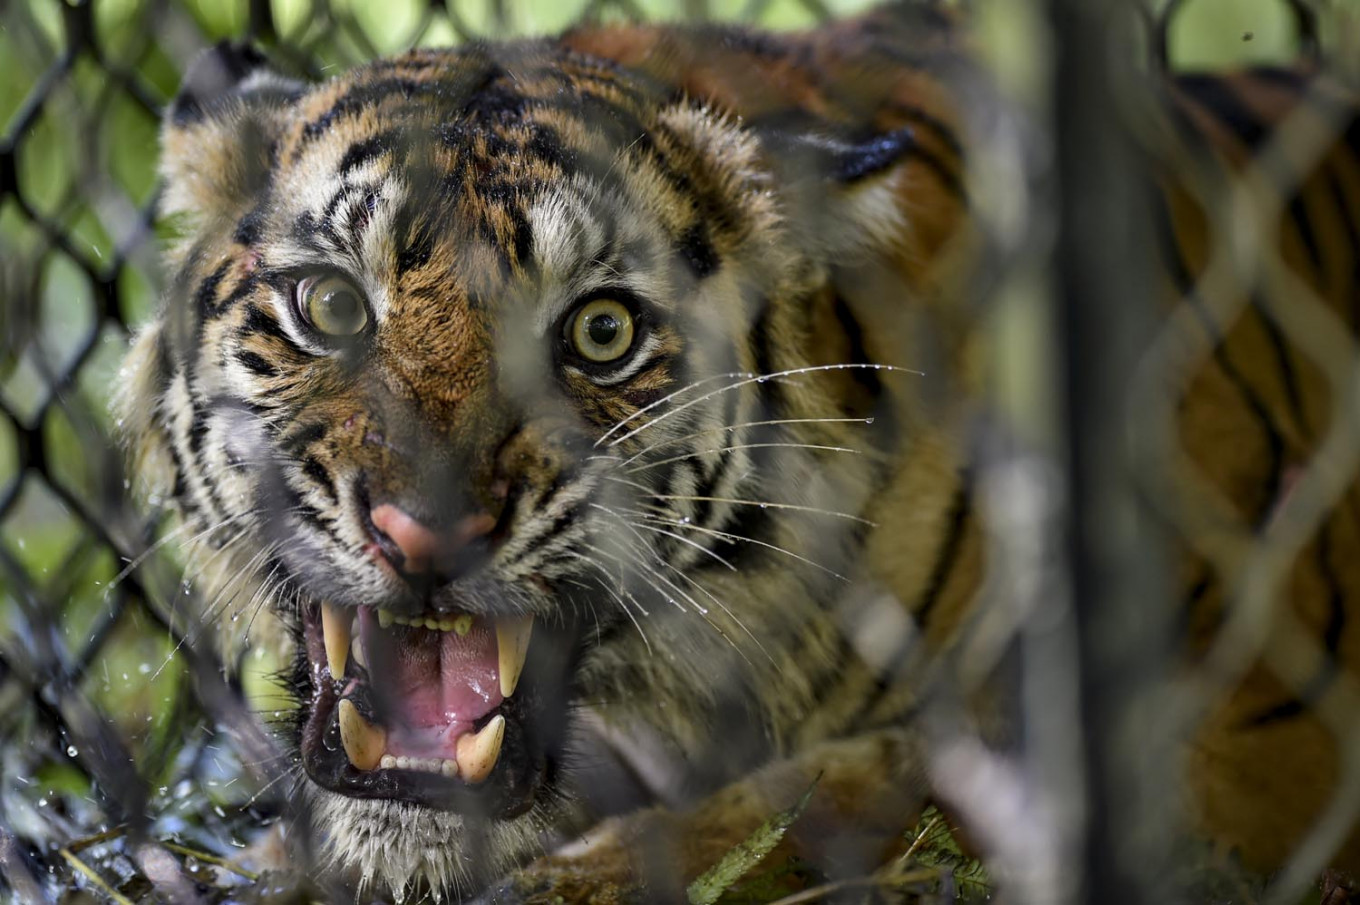 Sumatran tiger returns to wild after recovering from injuries caused by snare